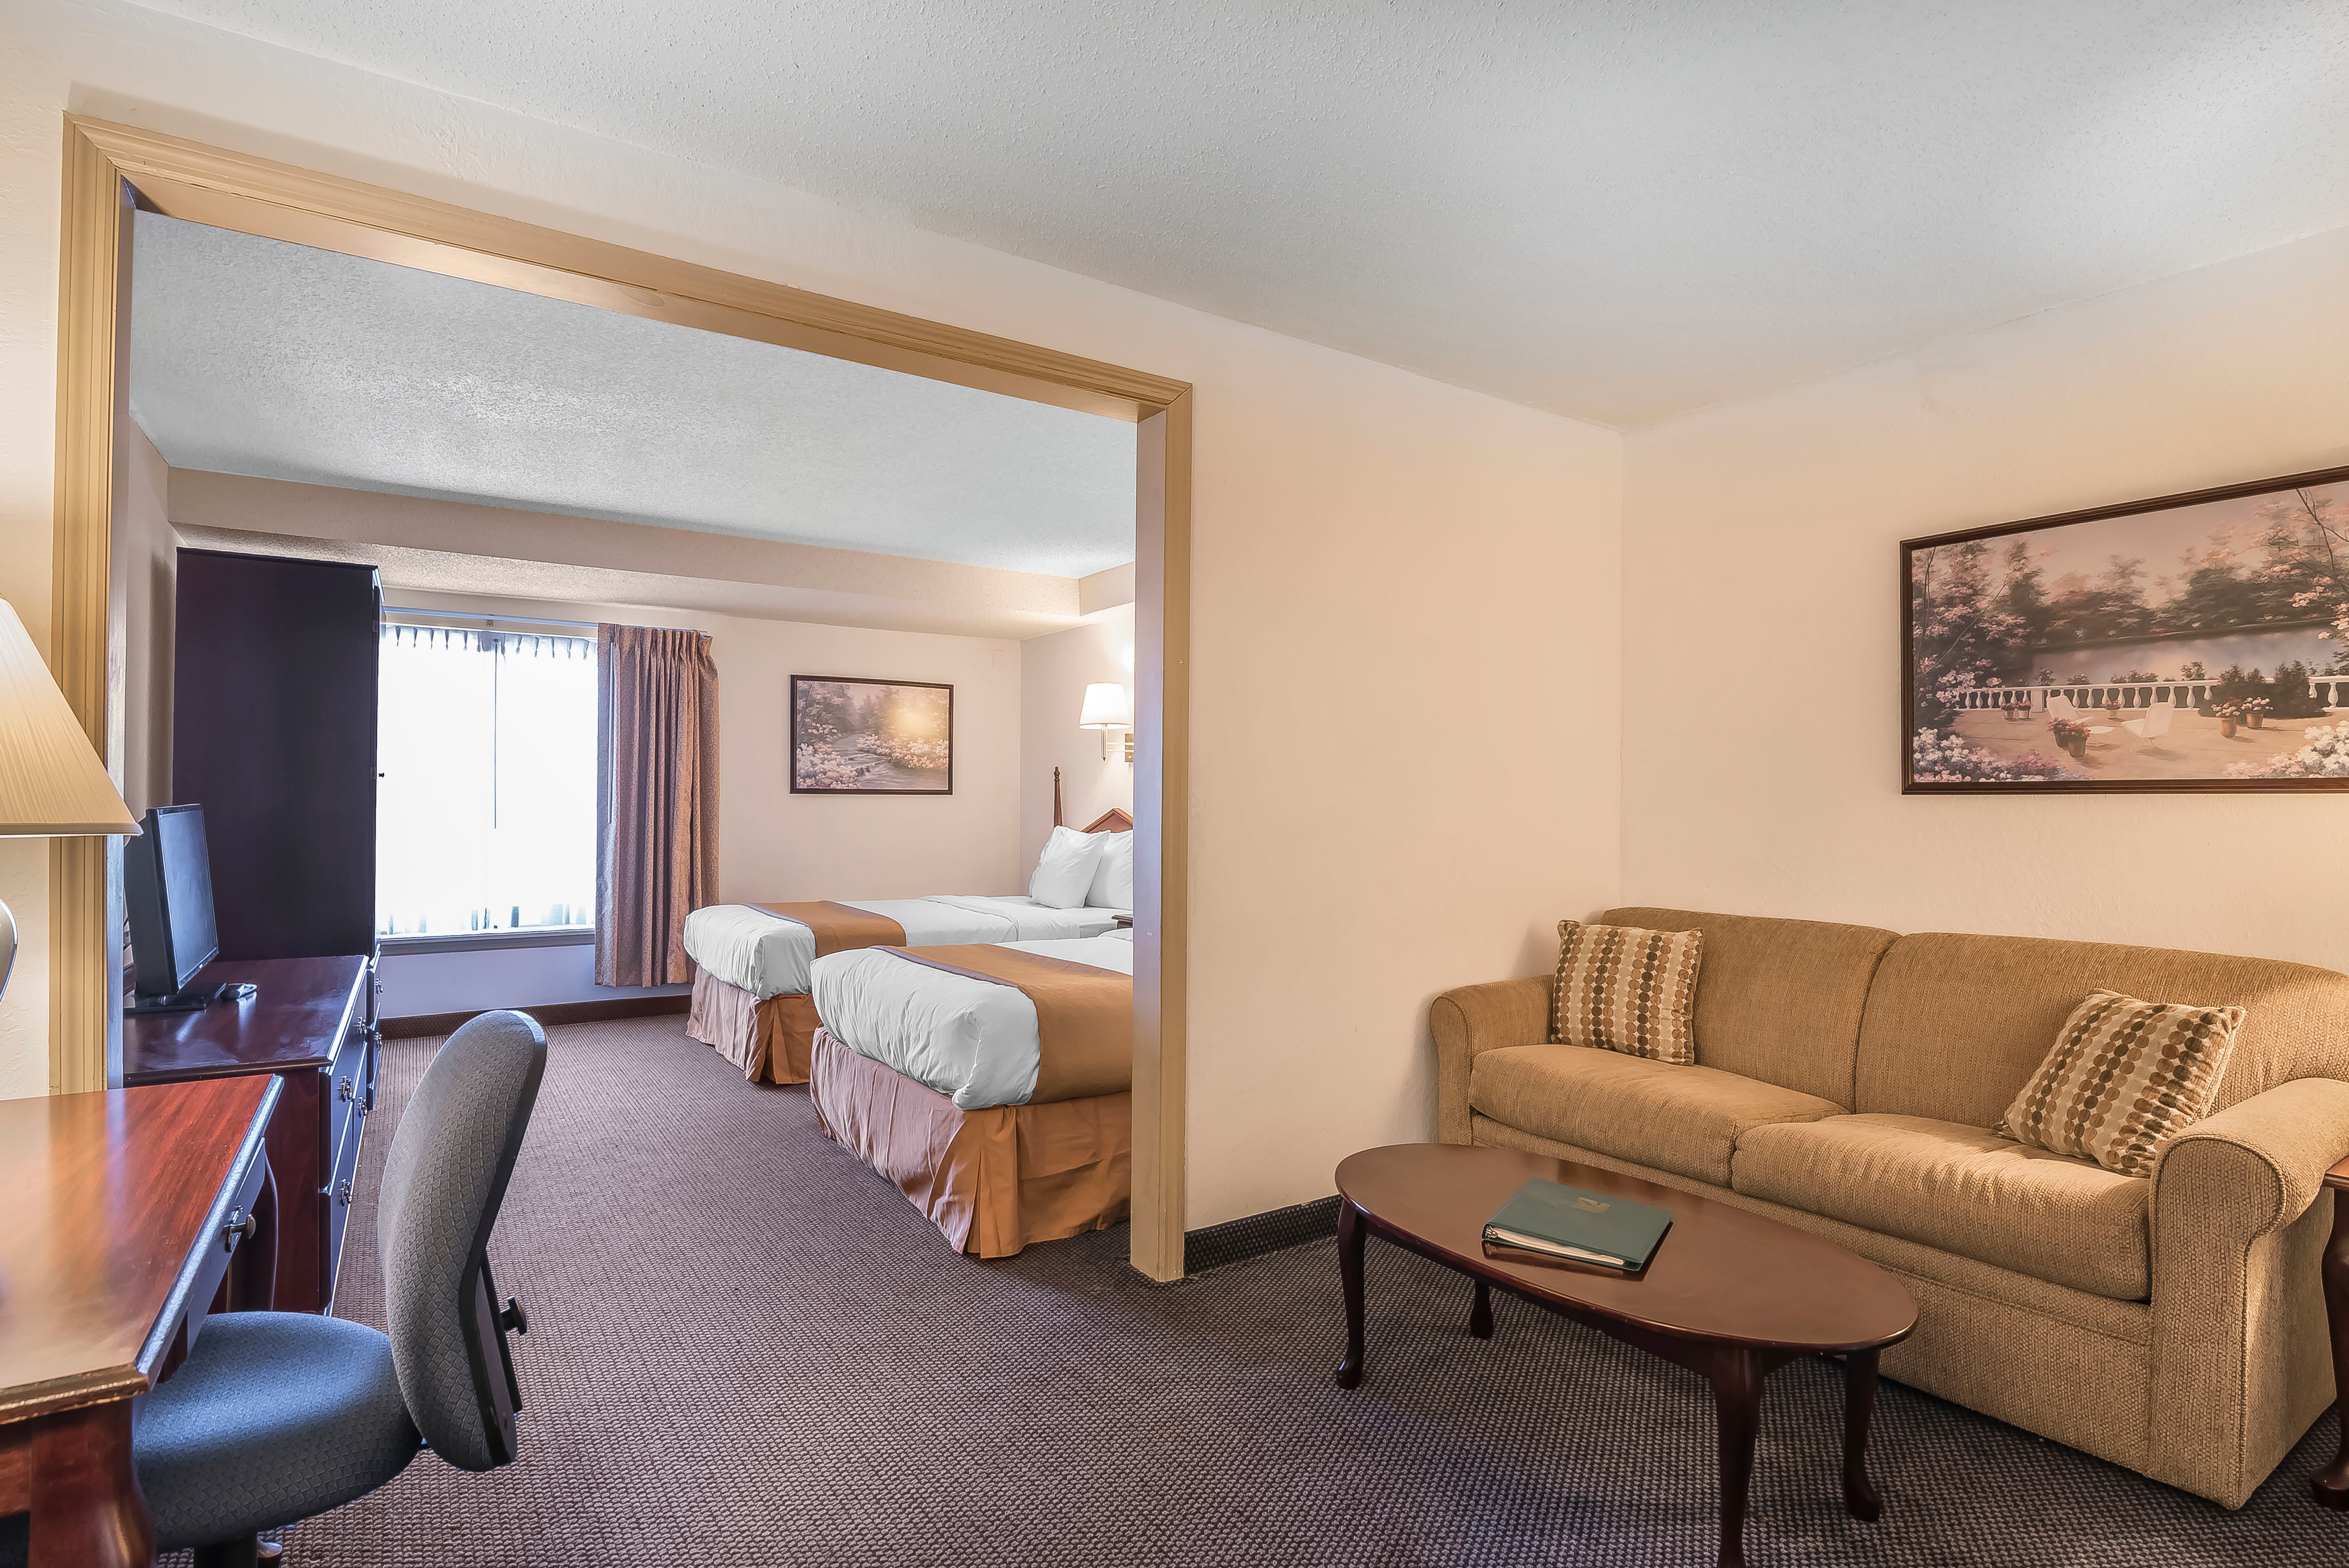 Quality inn suites albany airport in latham ny whitepages for 6016 area code